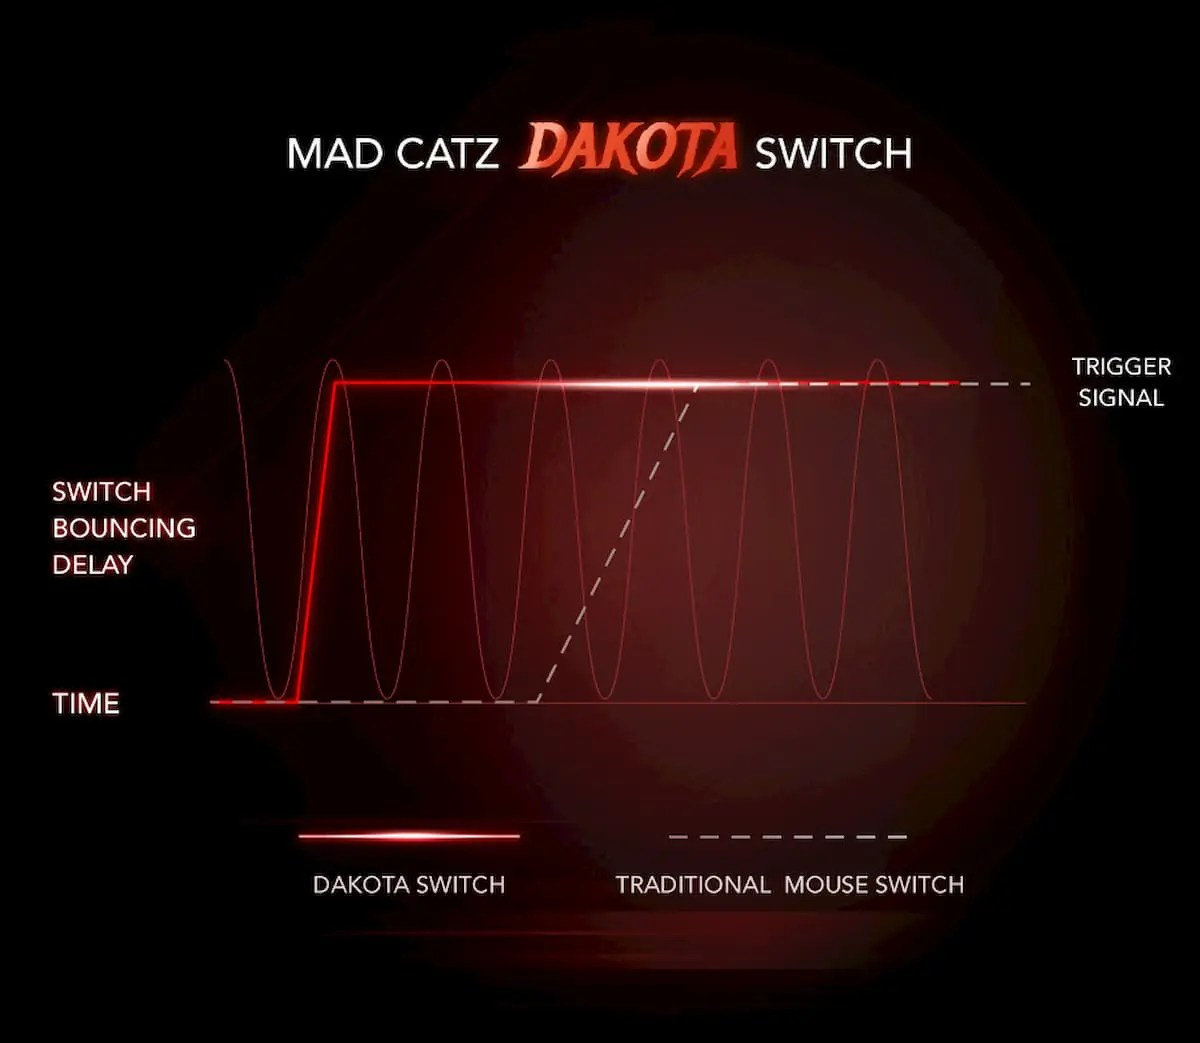 Mad Catz DAKOTA機械鍵